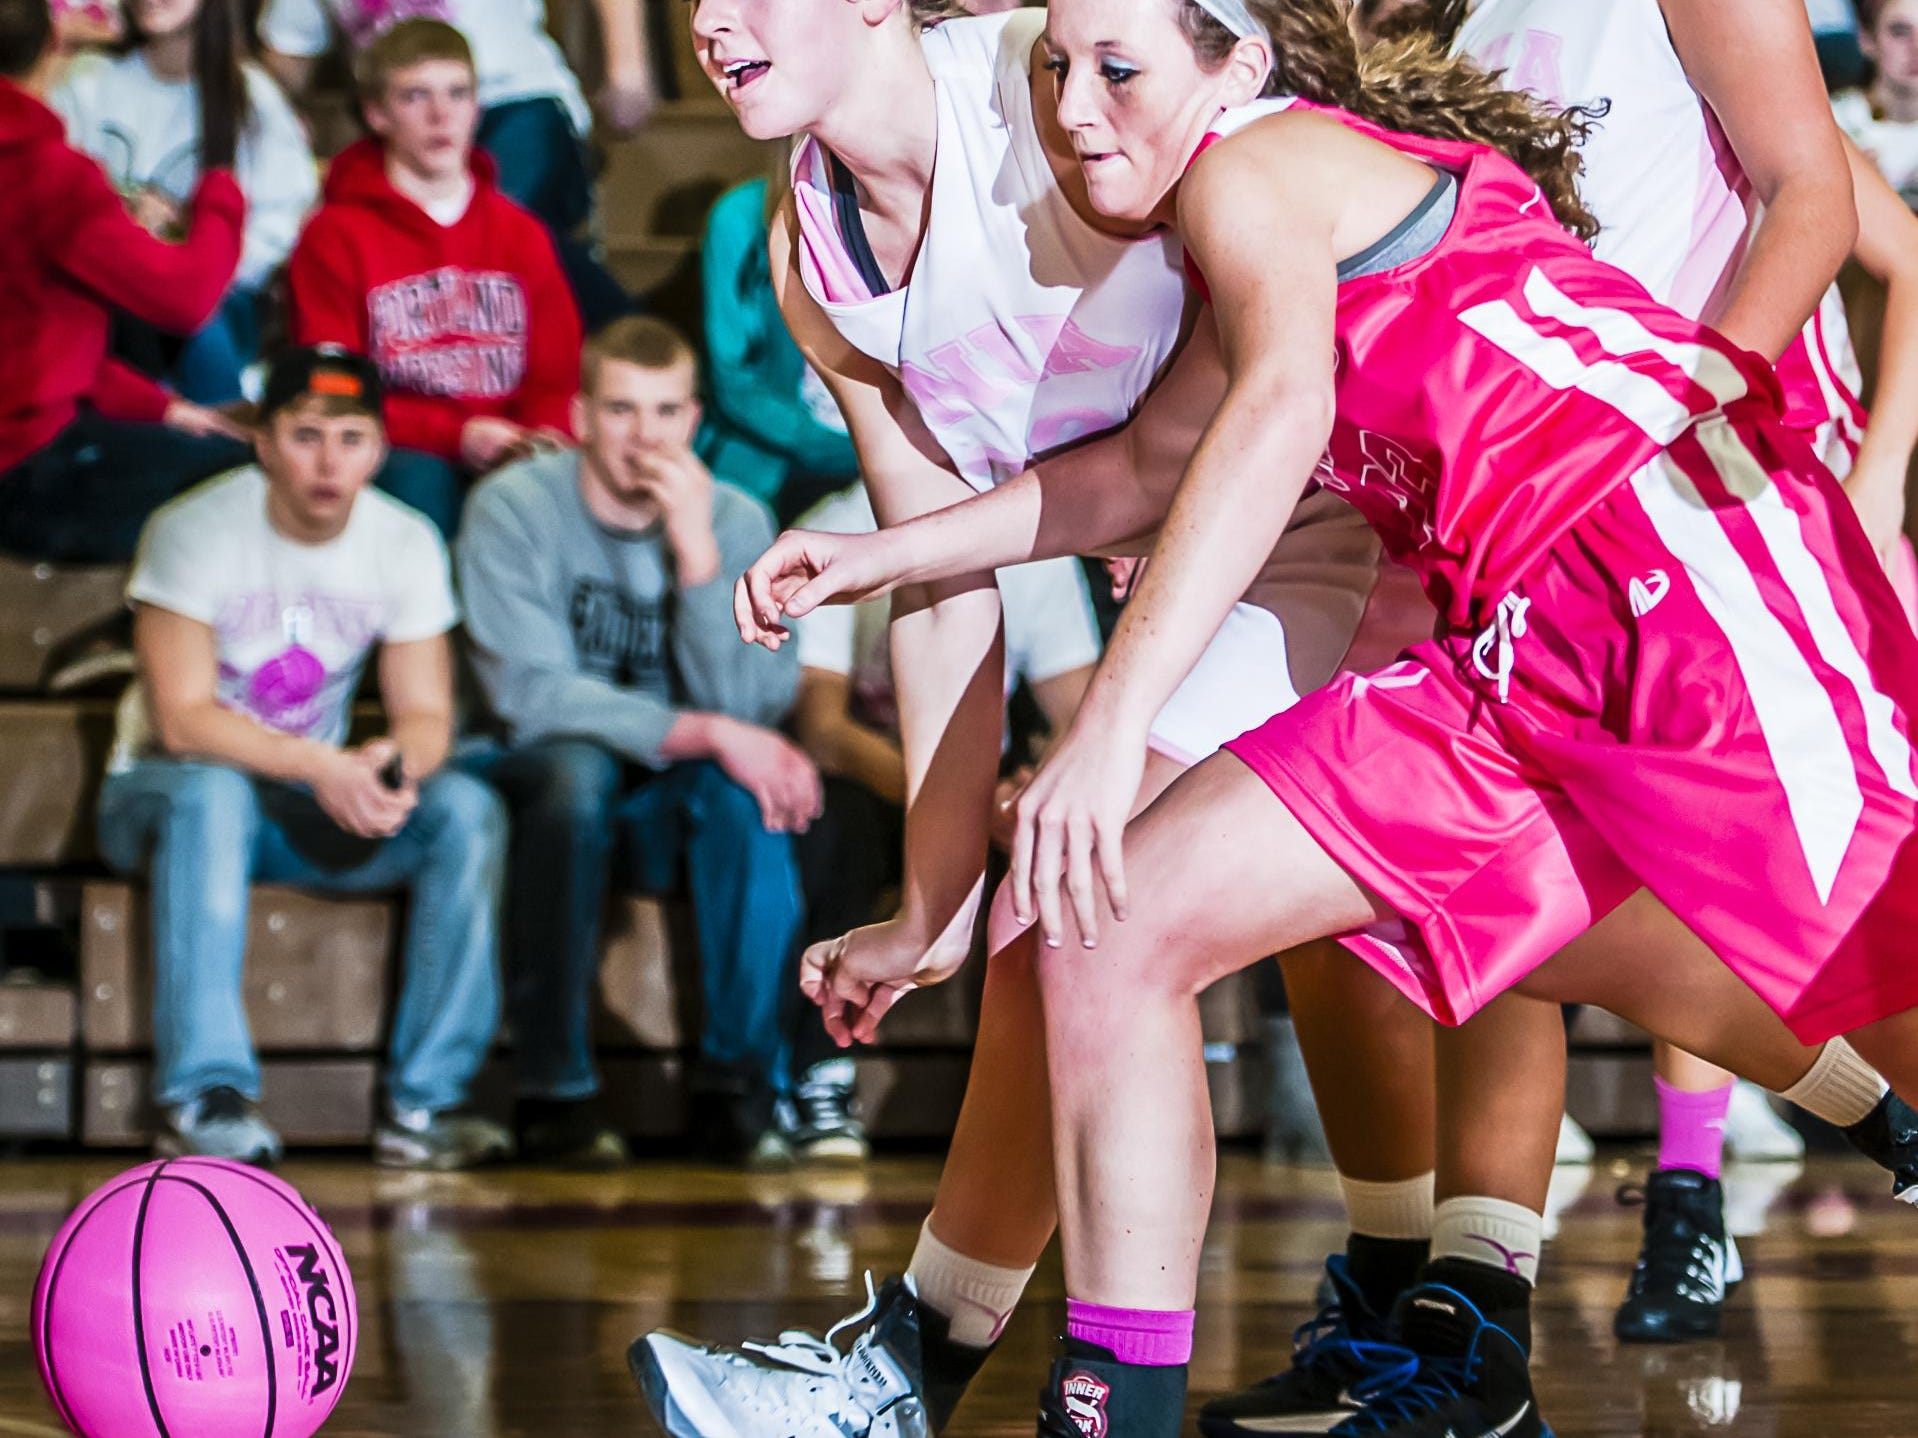 Sarah Swartz (left) of Ionia and Allie Grys of Portland go after a loose ball during a Coaches vs. Cancer game in 2014.